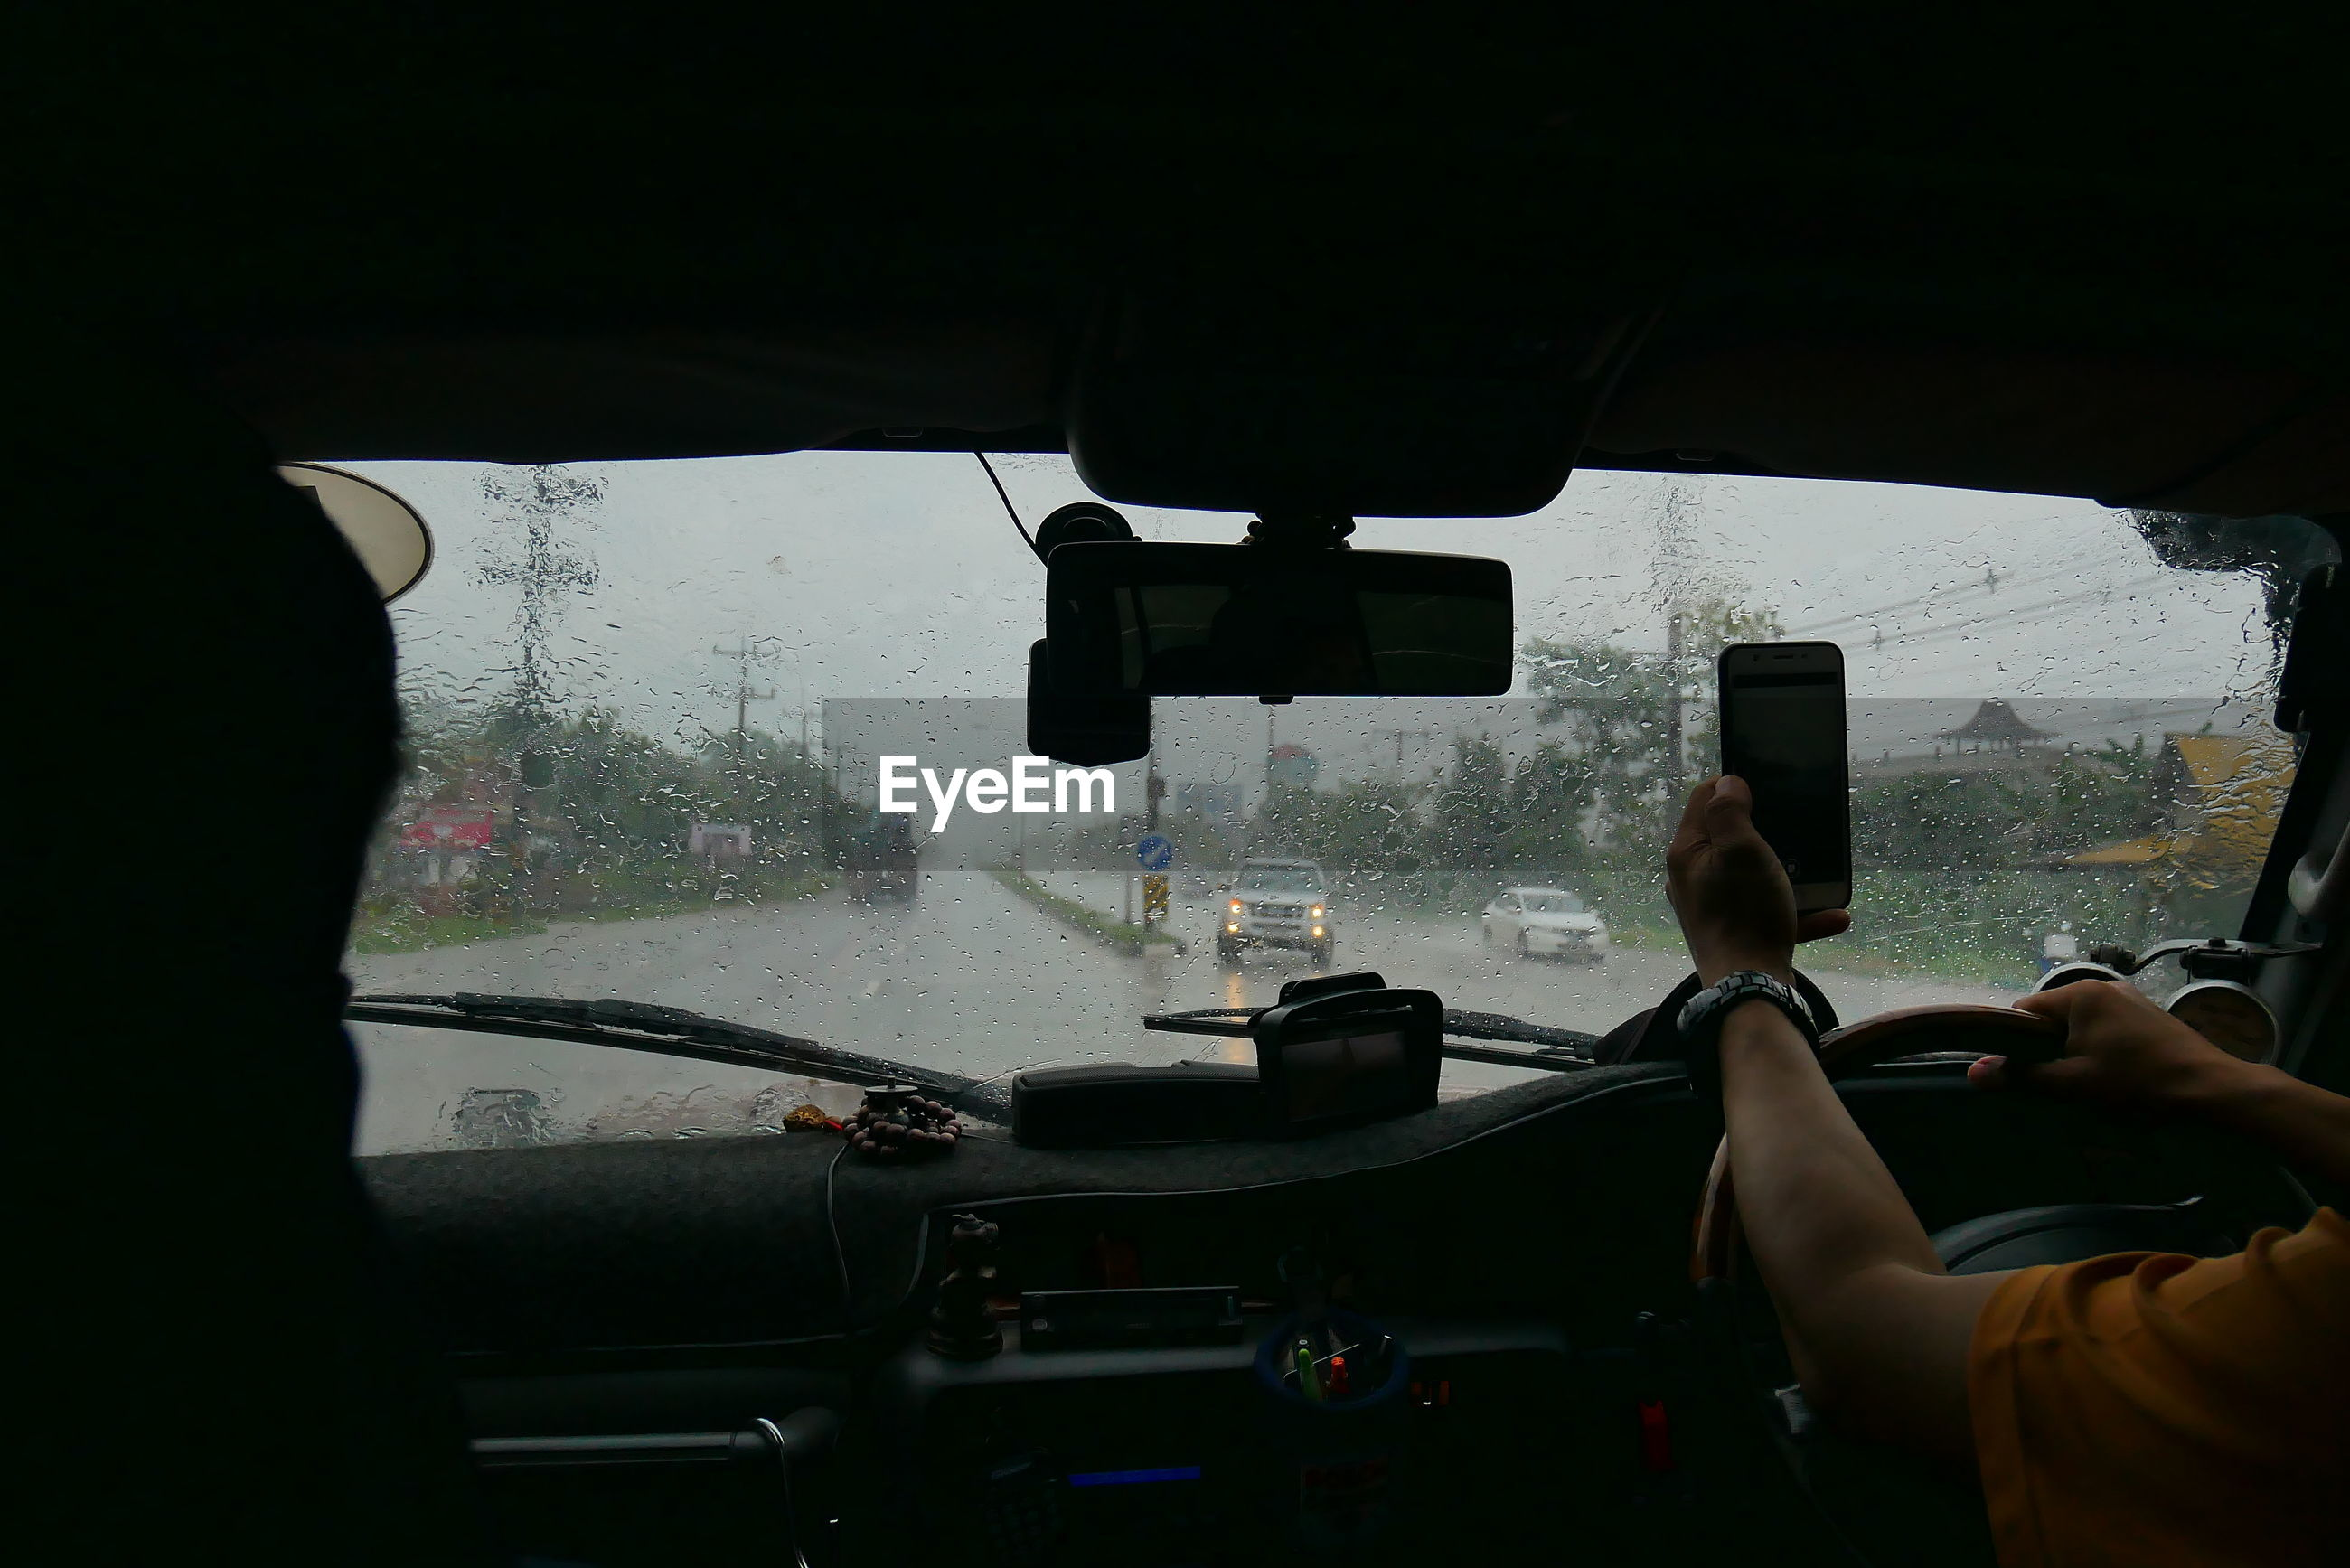 Midsection of man using phone while driving car during rainy season